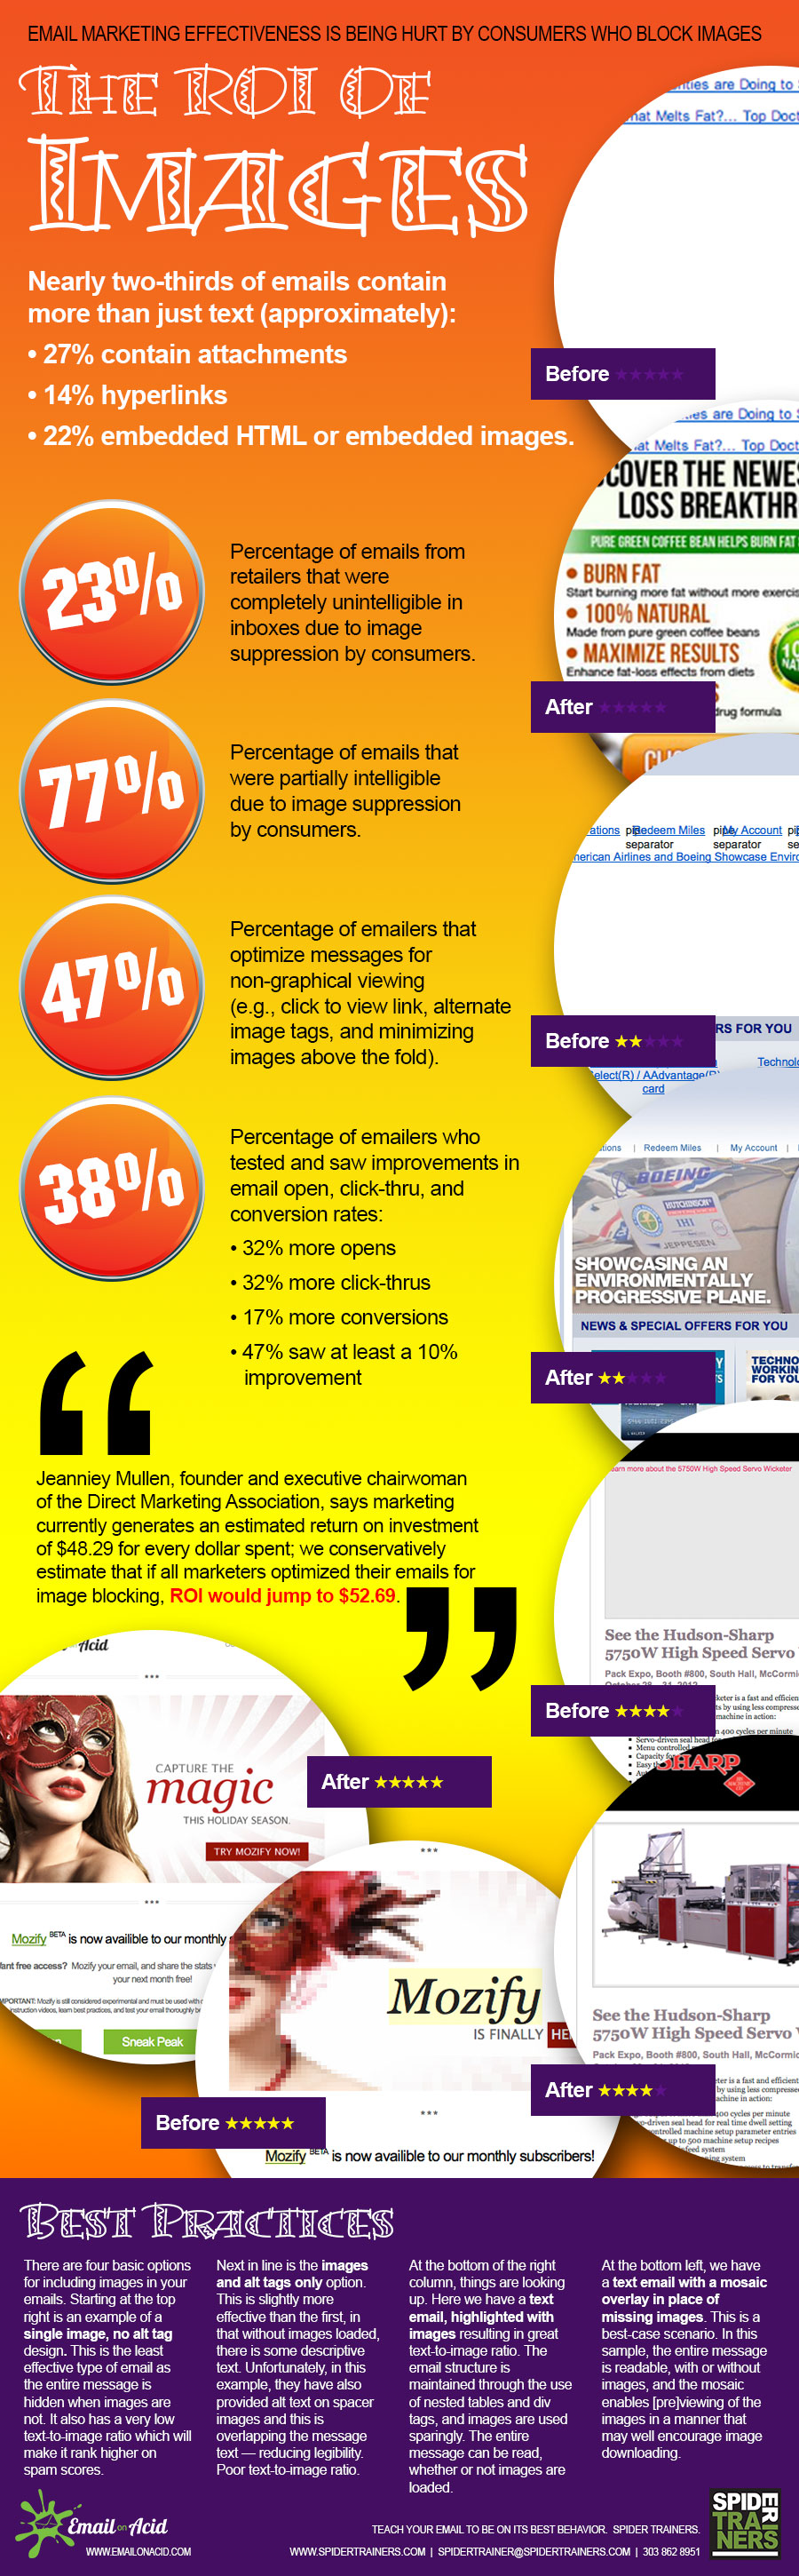 The ROI of images infographic image